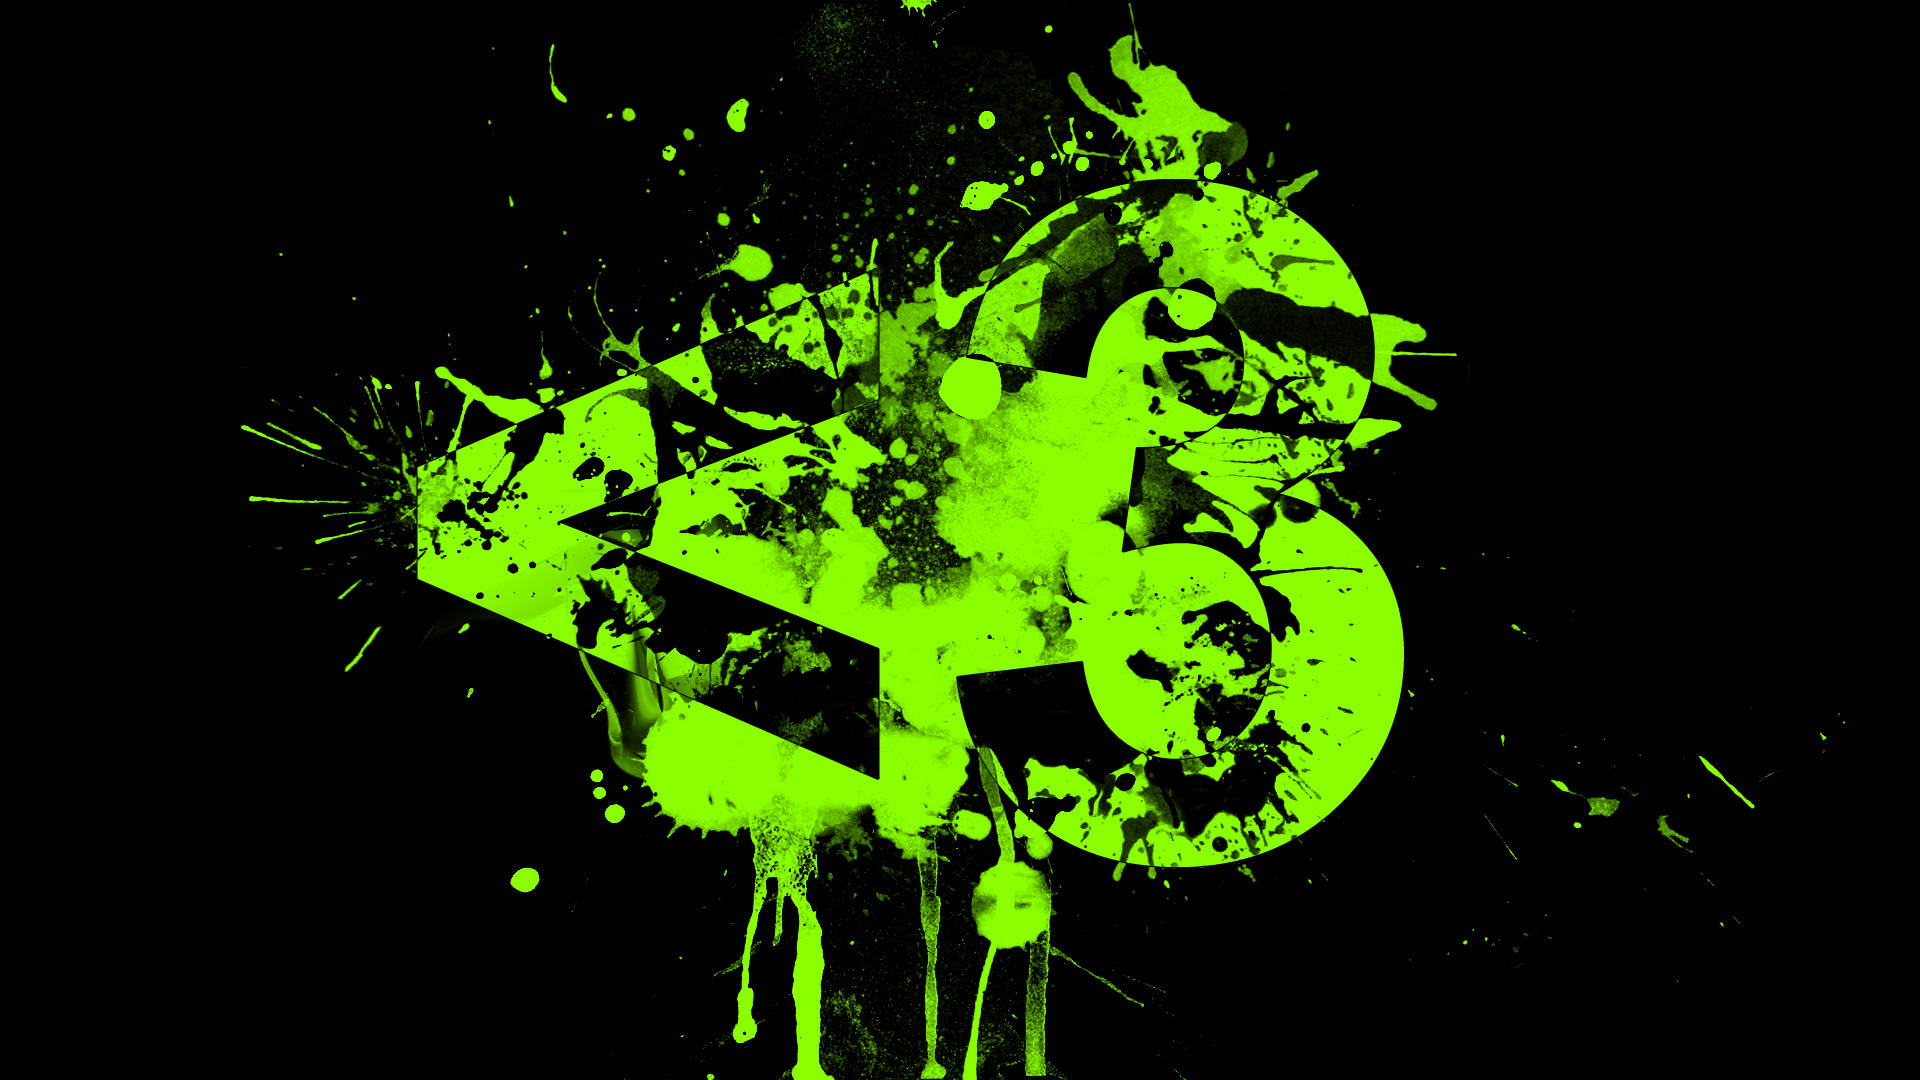 Green And Black Images  32 High Resolution Wallpaper